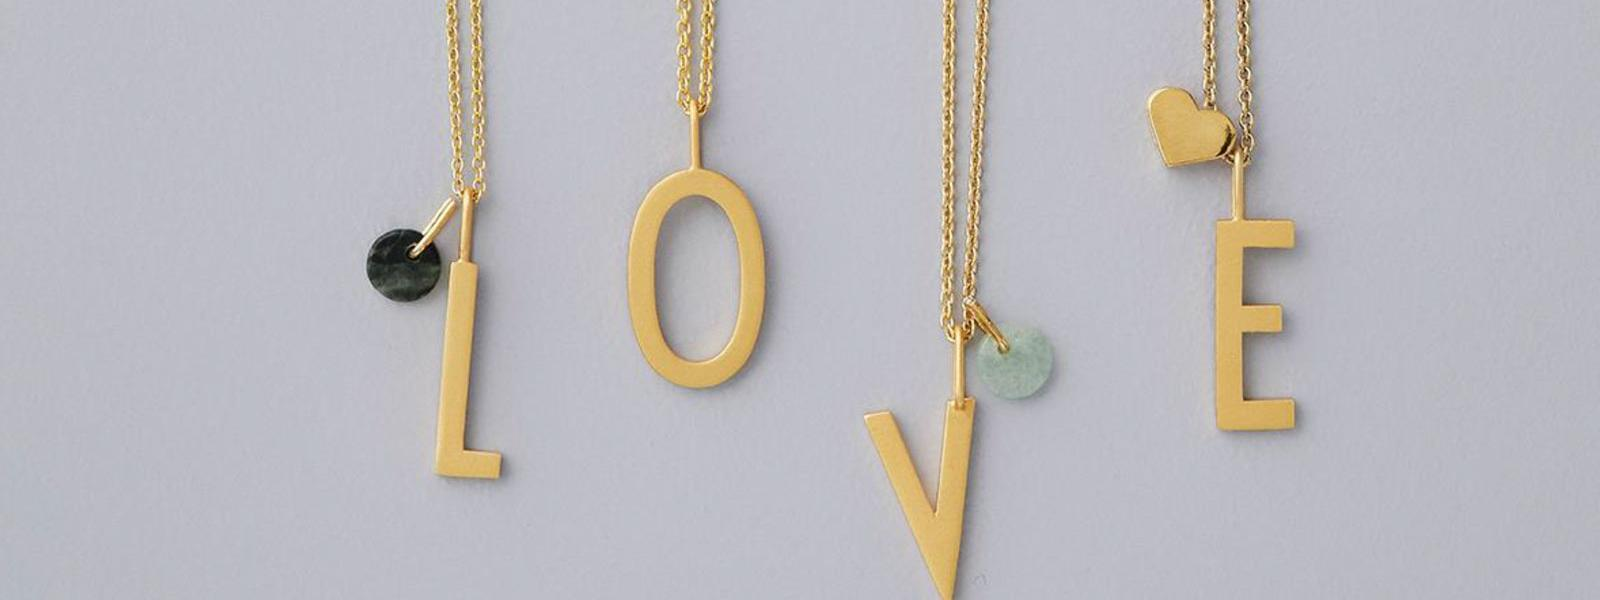 LOVE letters by DESIGN LETTERS